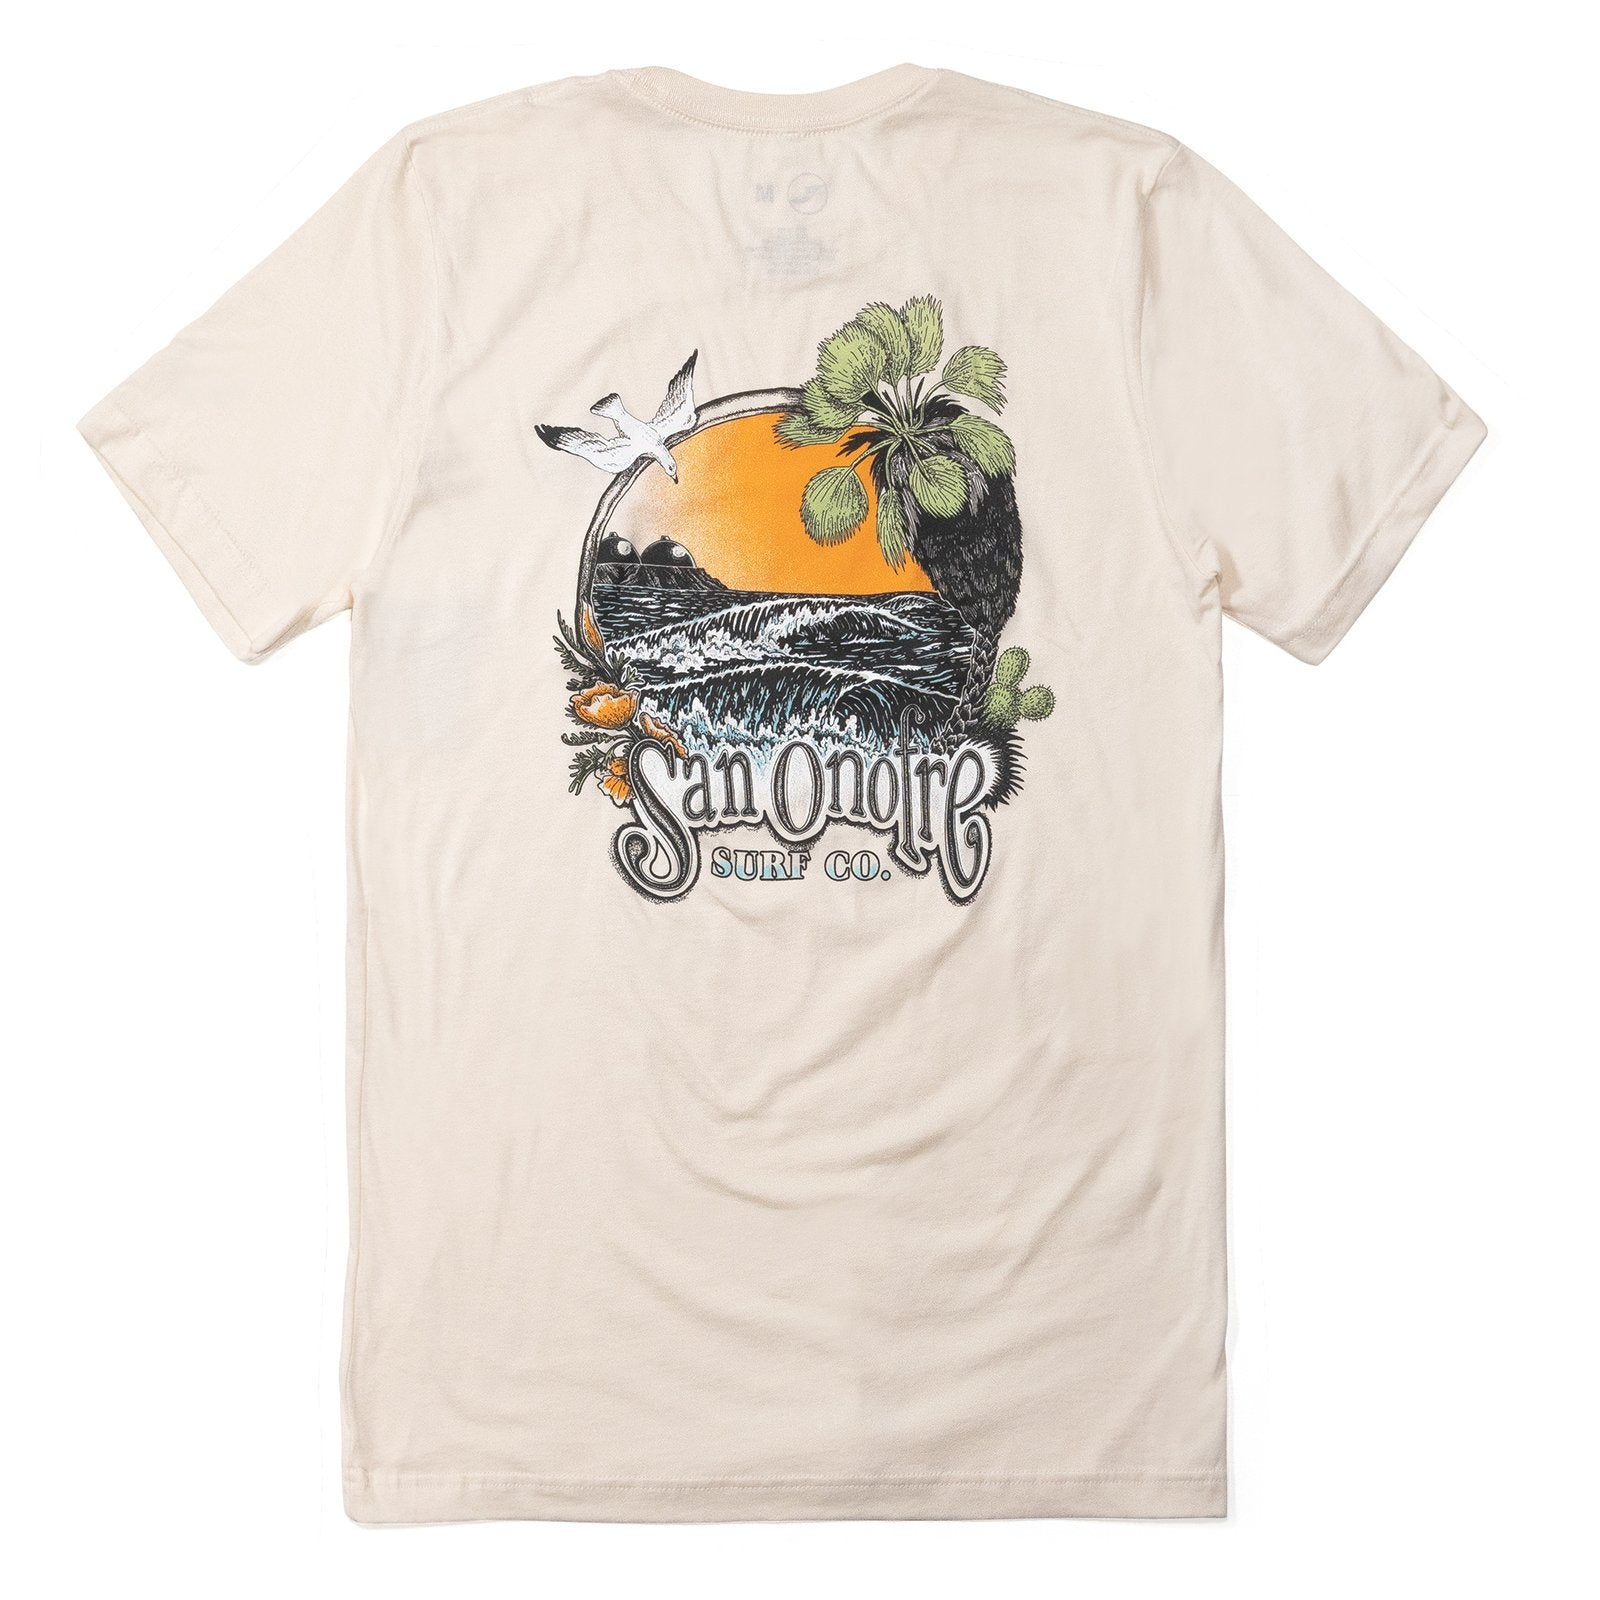 San Onofre Surf Clothing Co. Daydream T - Natural